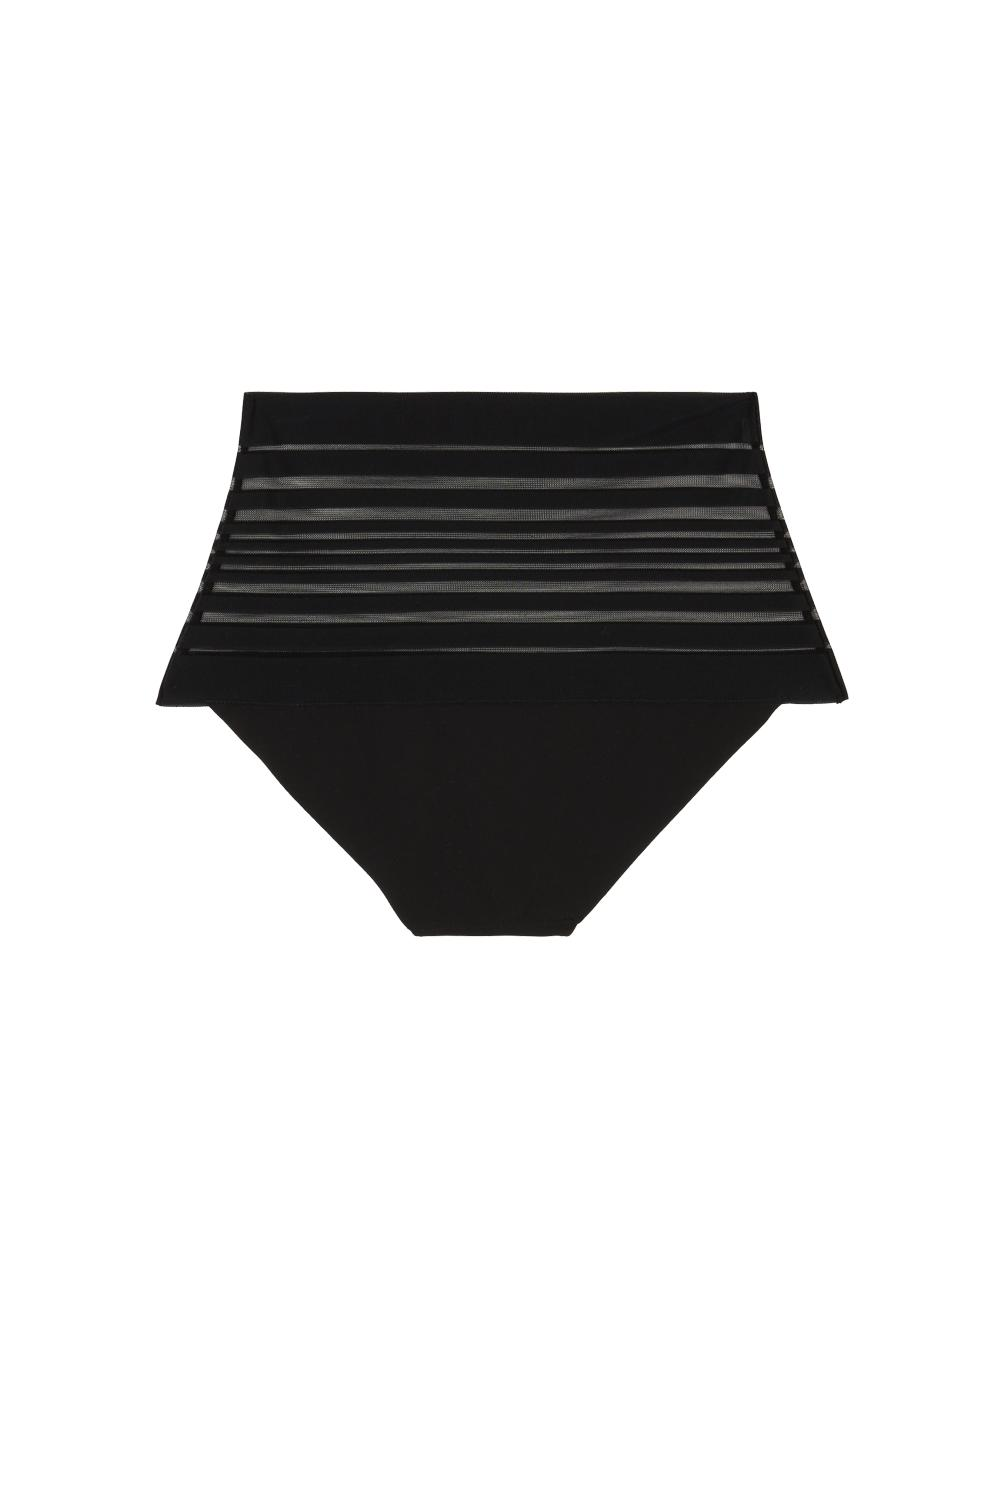 Body Lines Brief Panties